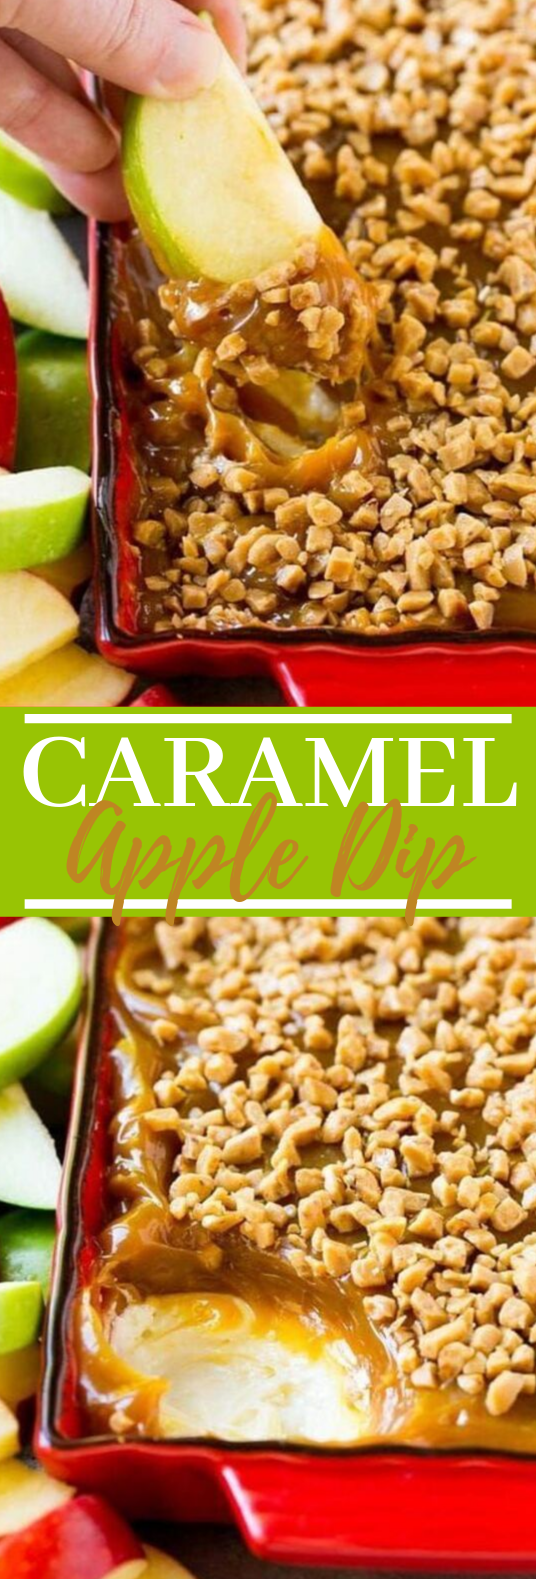 Caramel Apple Dip #desserts #apple